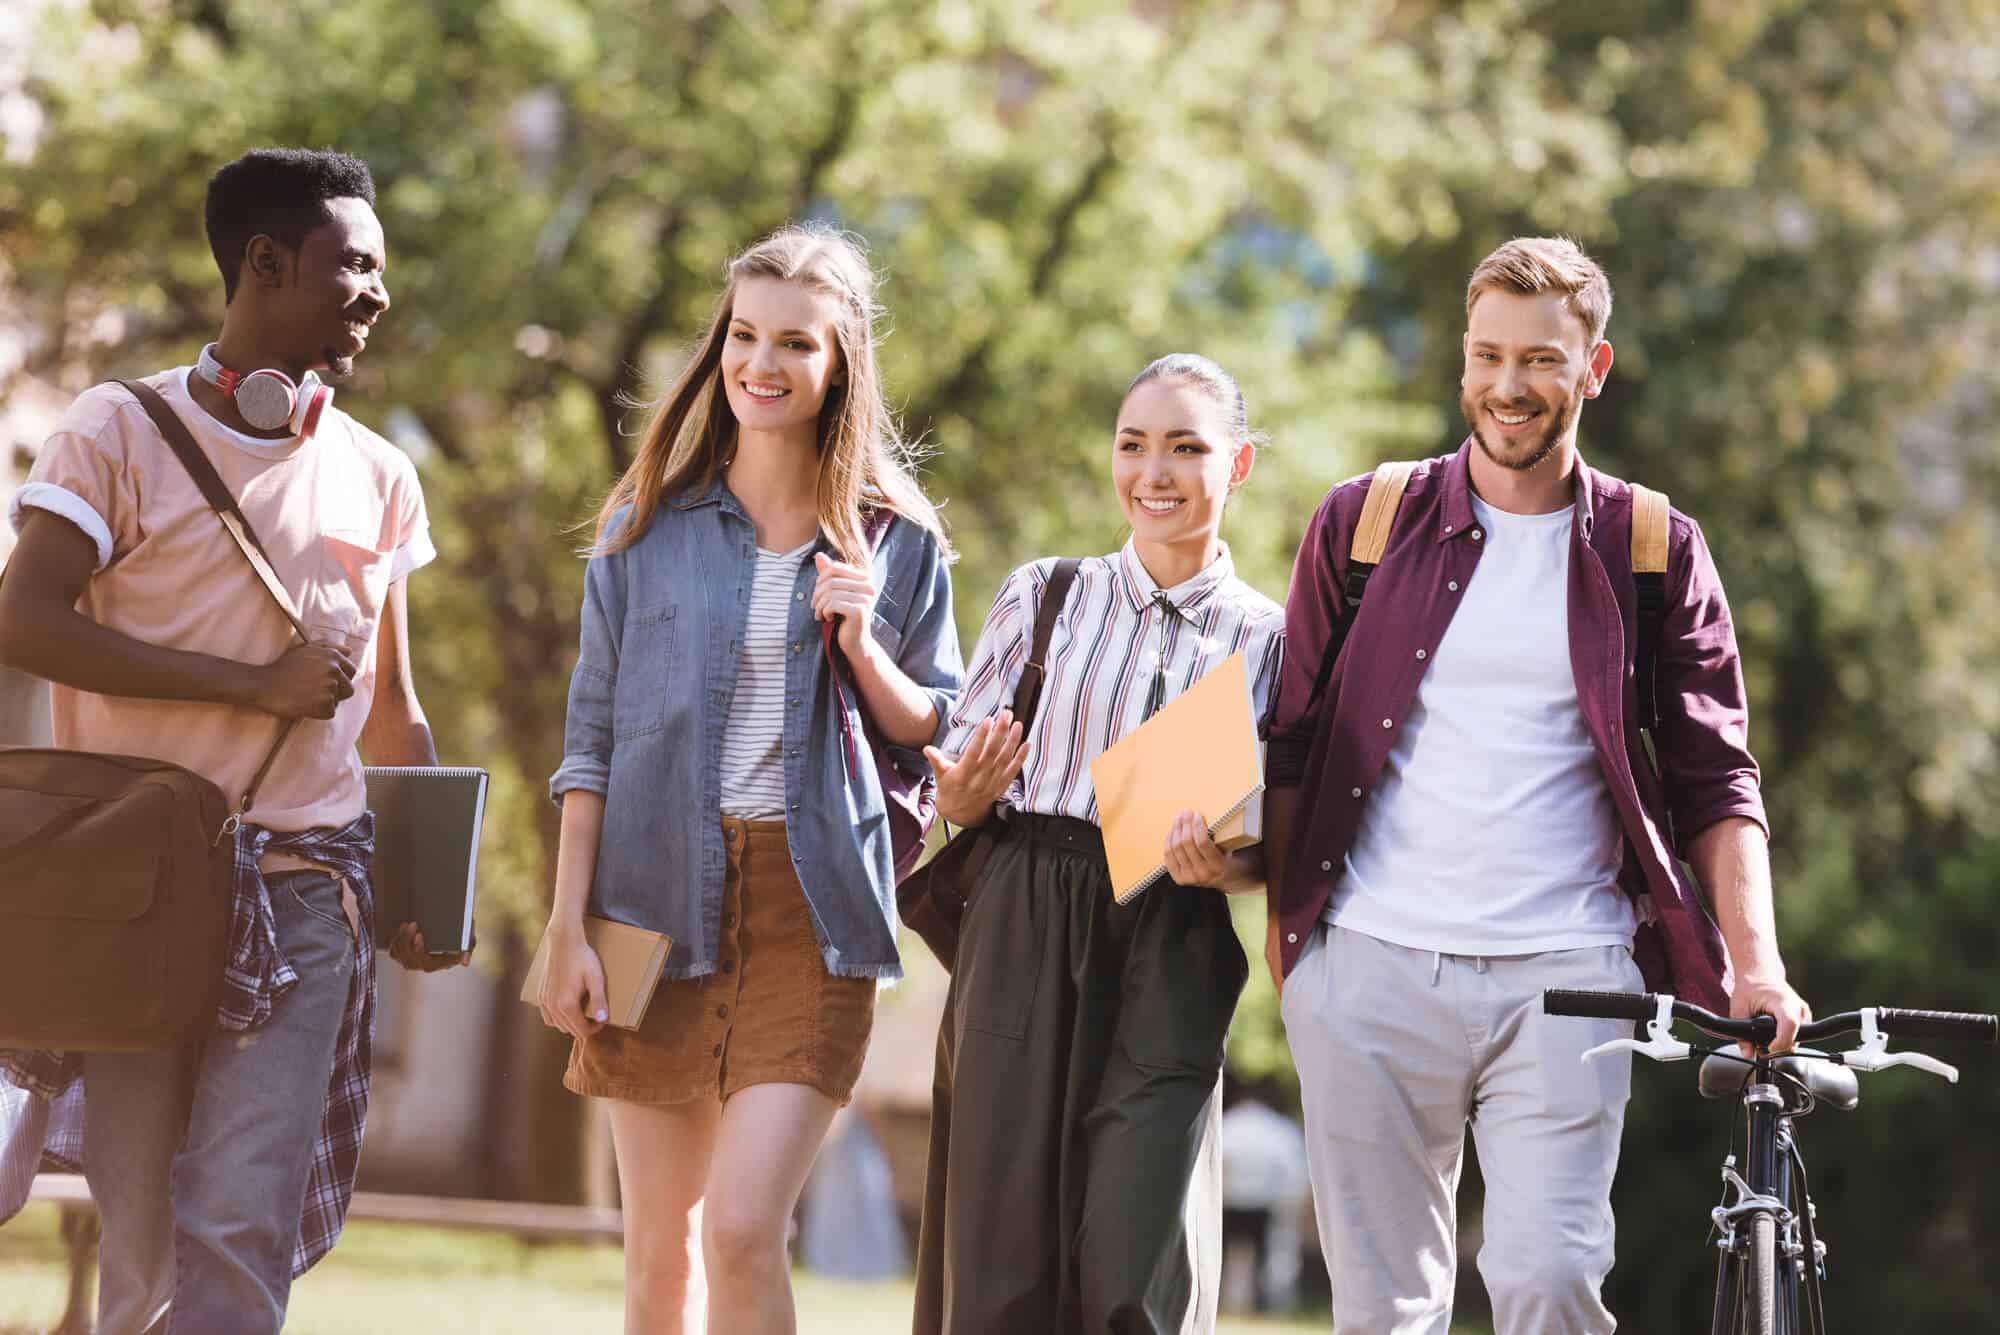 Four college students walking and smiling